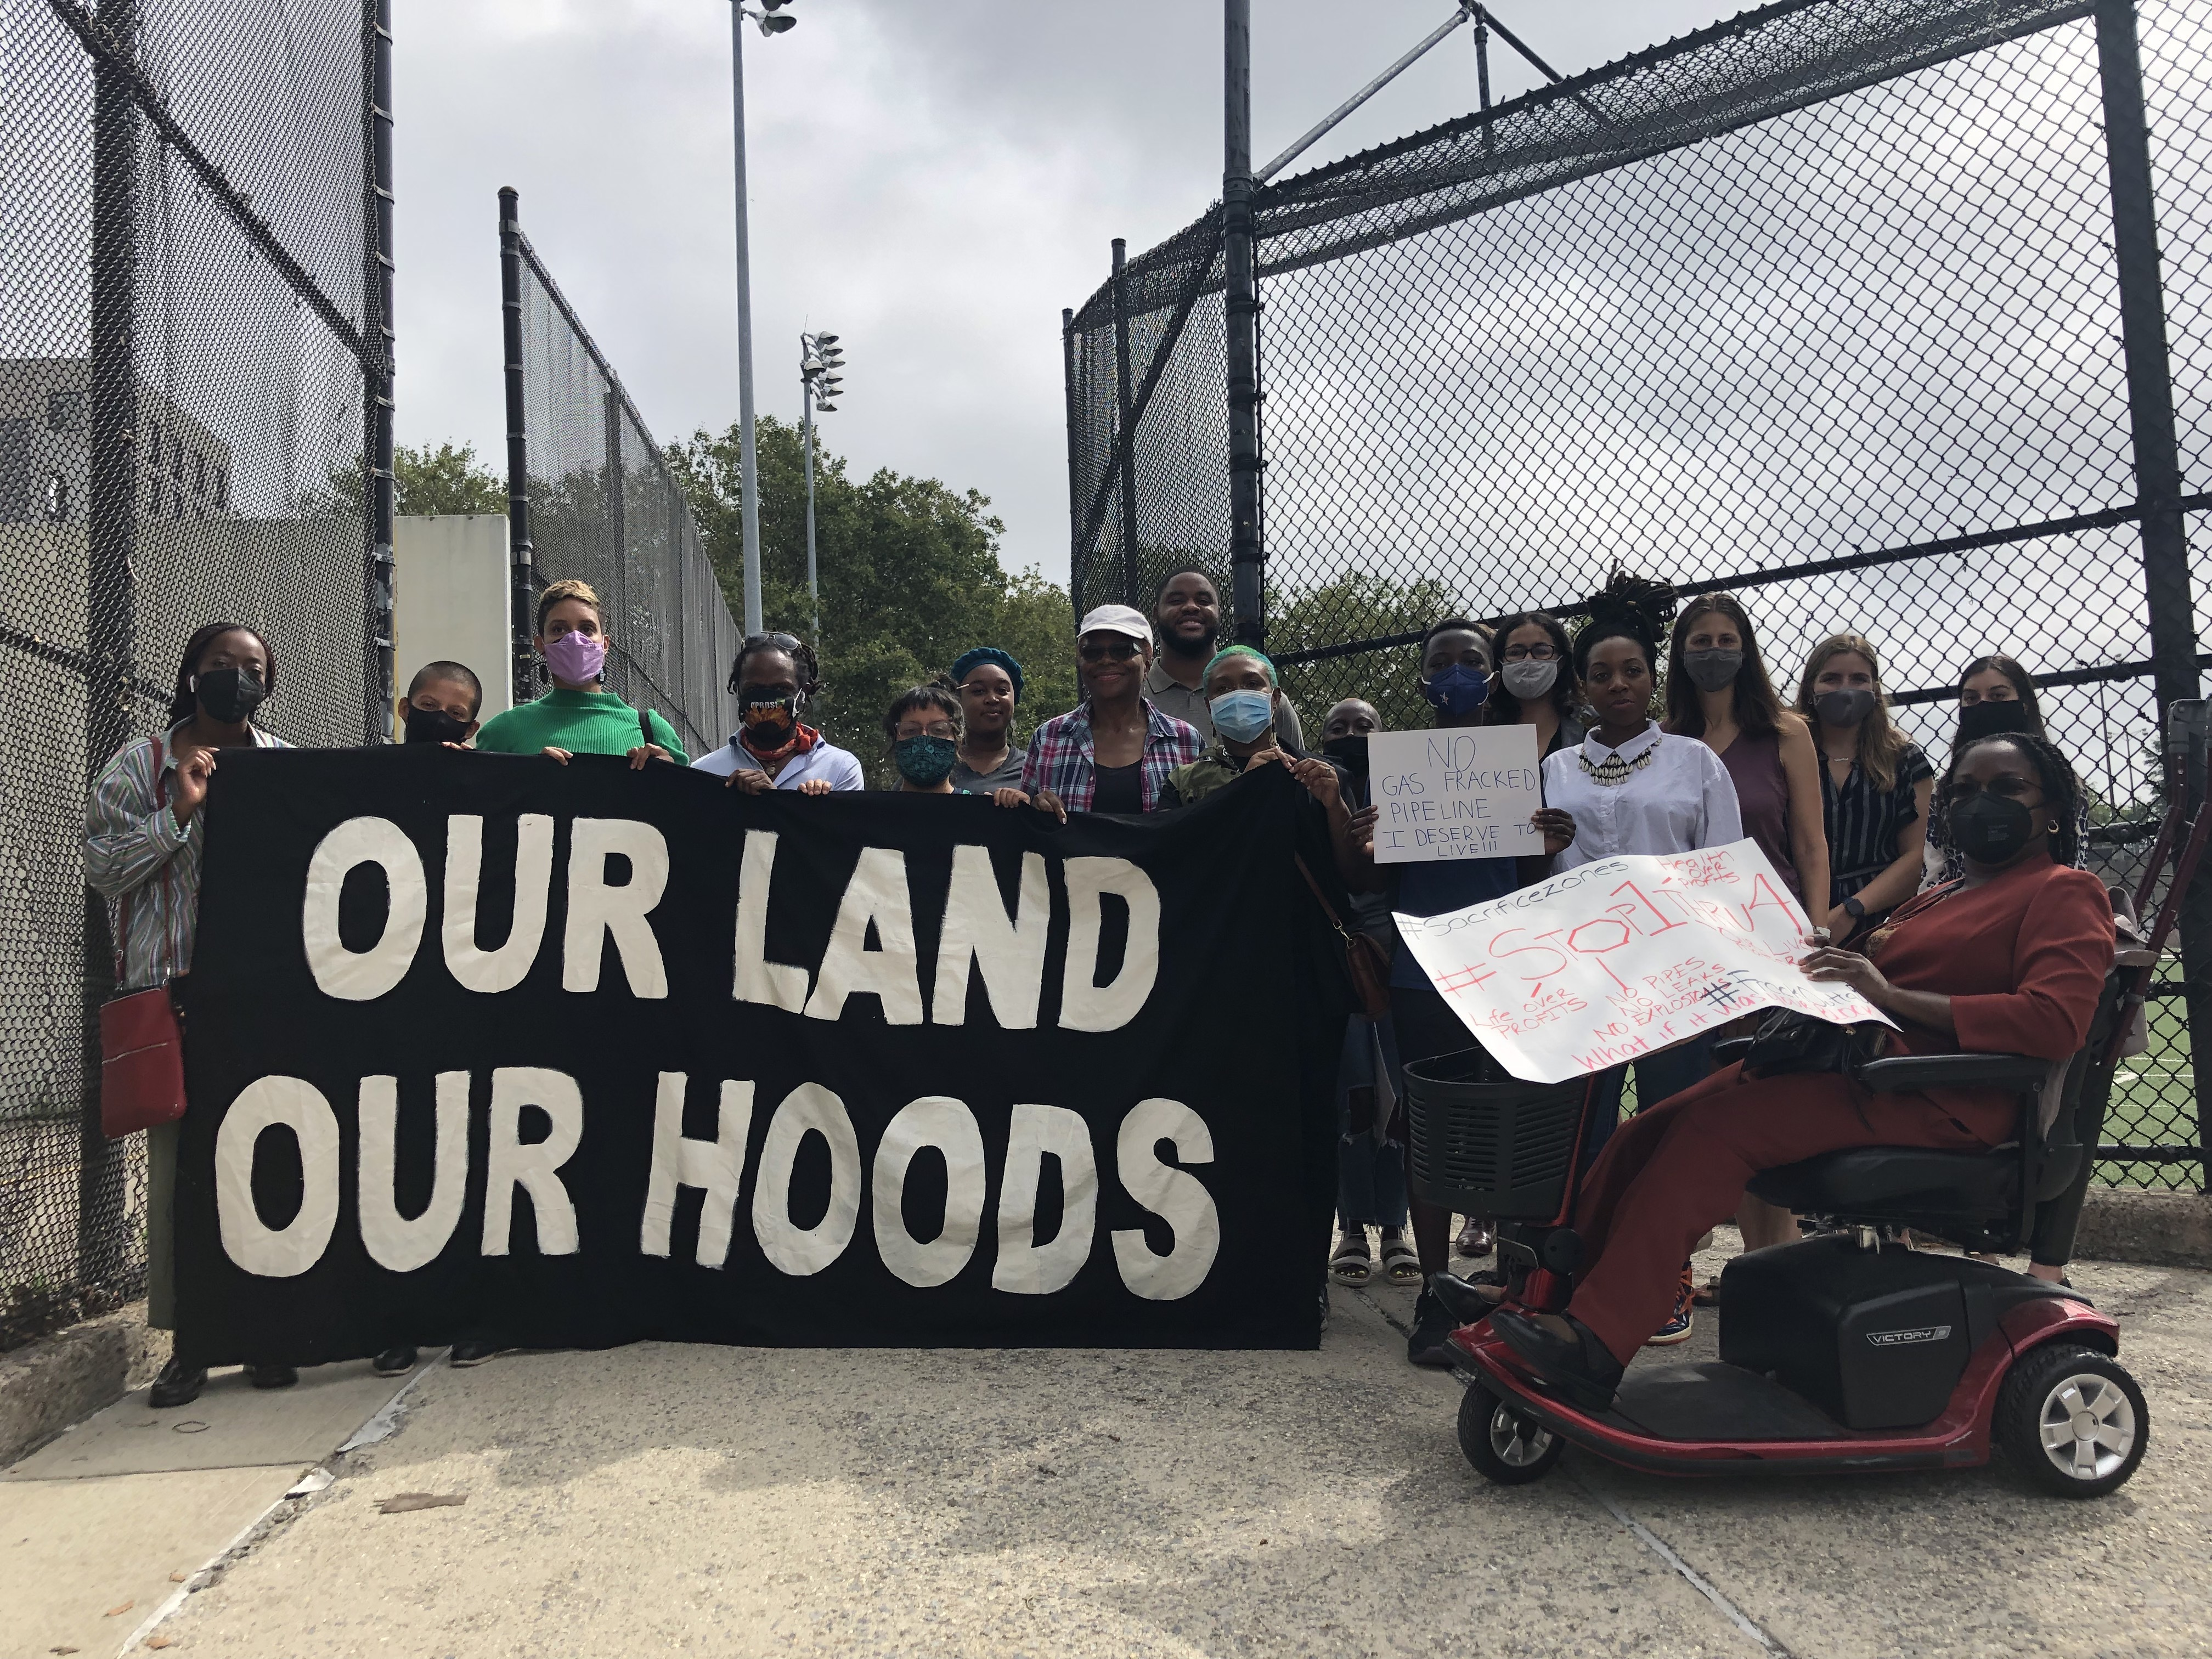 Brooklyn community groups appealed to federal agencies to investigate a National Grid gas pipeline running through Brownsville, Ocean Hill, Bushwick and East Williamsburg, Aug. 30, 2021.